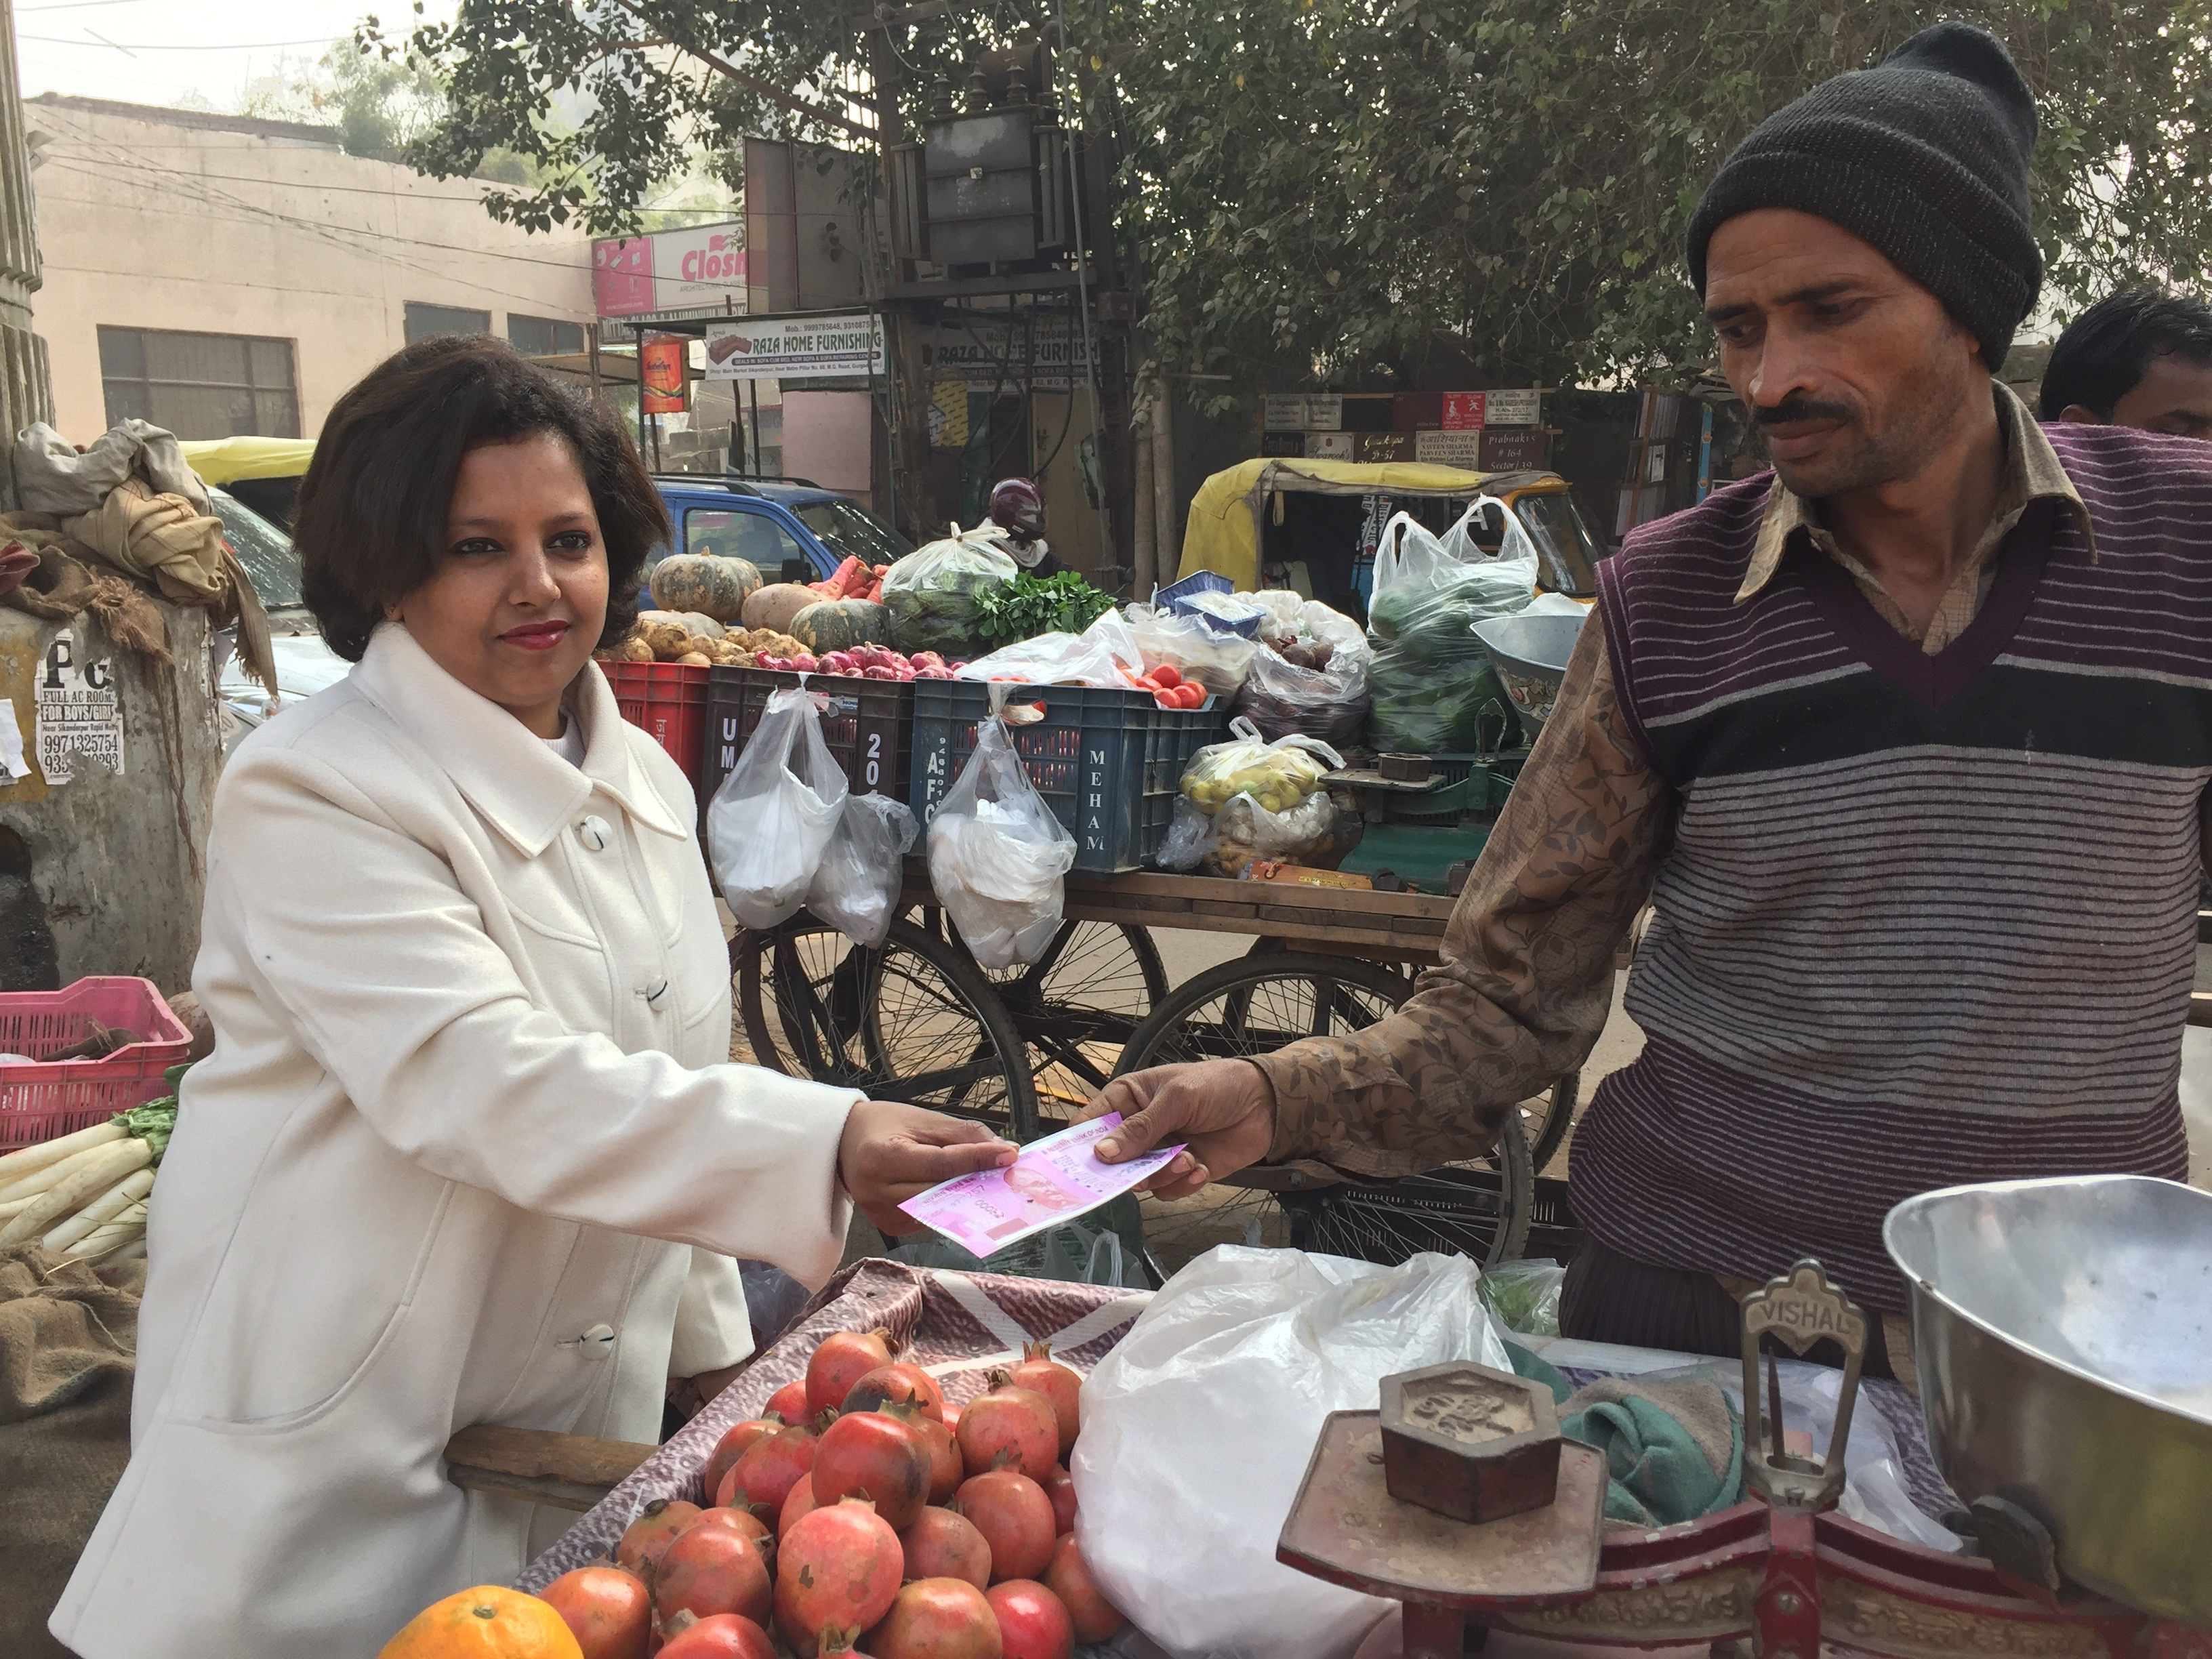 Fruit vendor Salan does all his business in cash and says he is clueless about how to make digital transactions. (A. Pasricha/VOA)